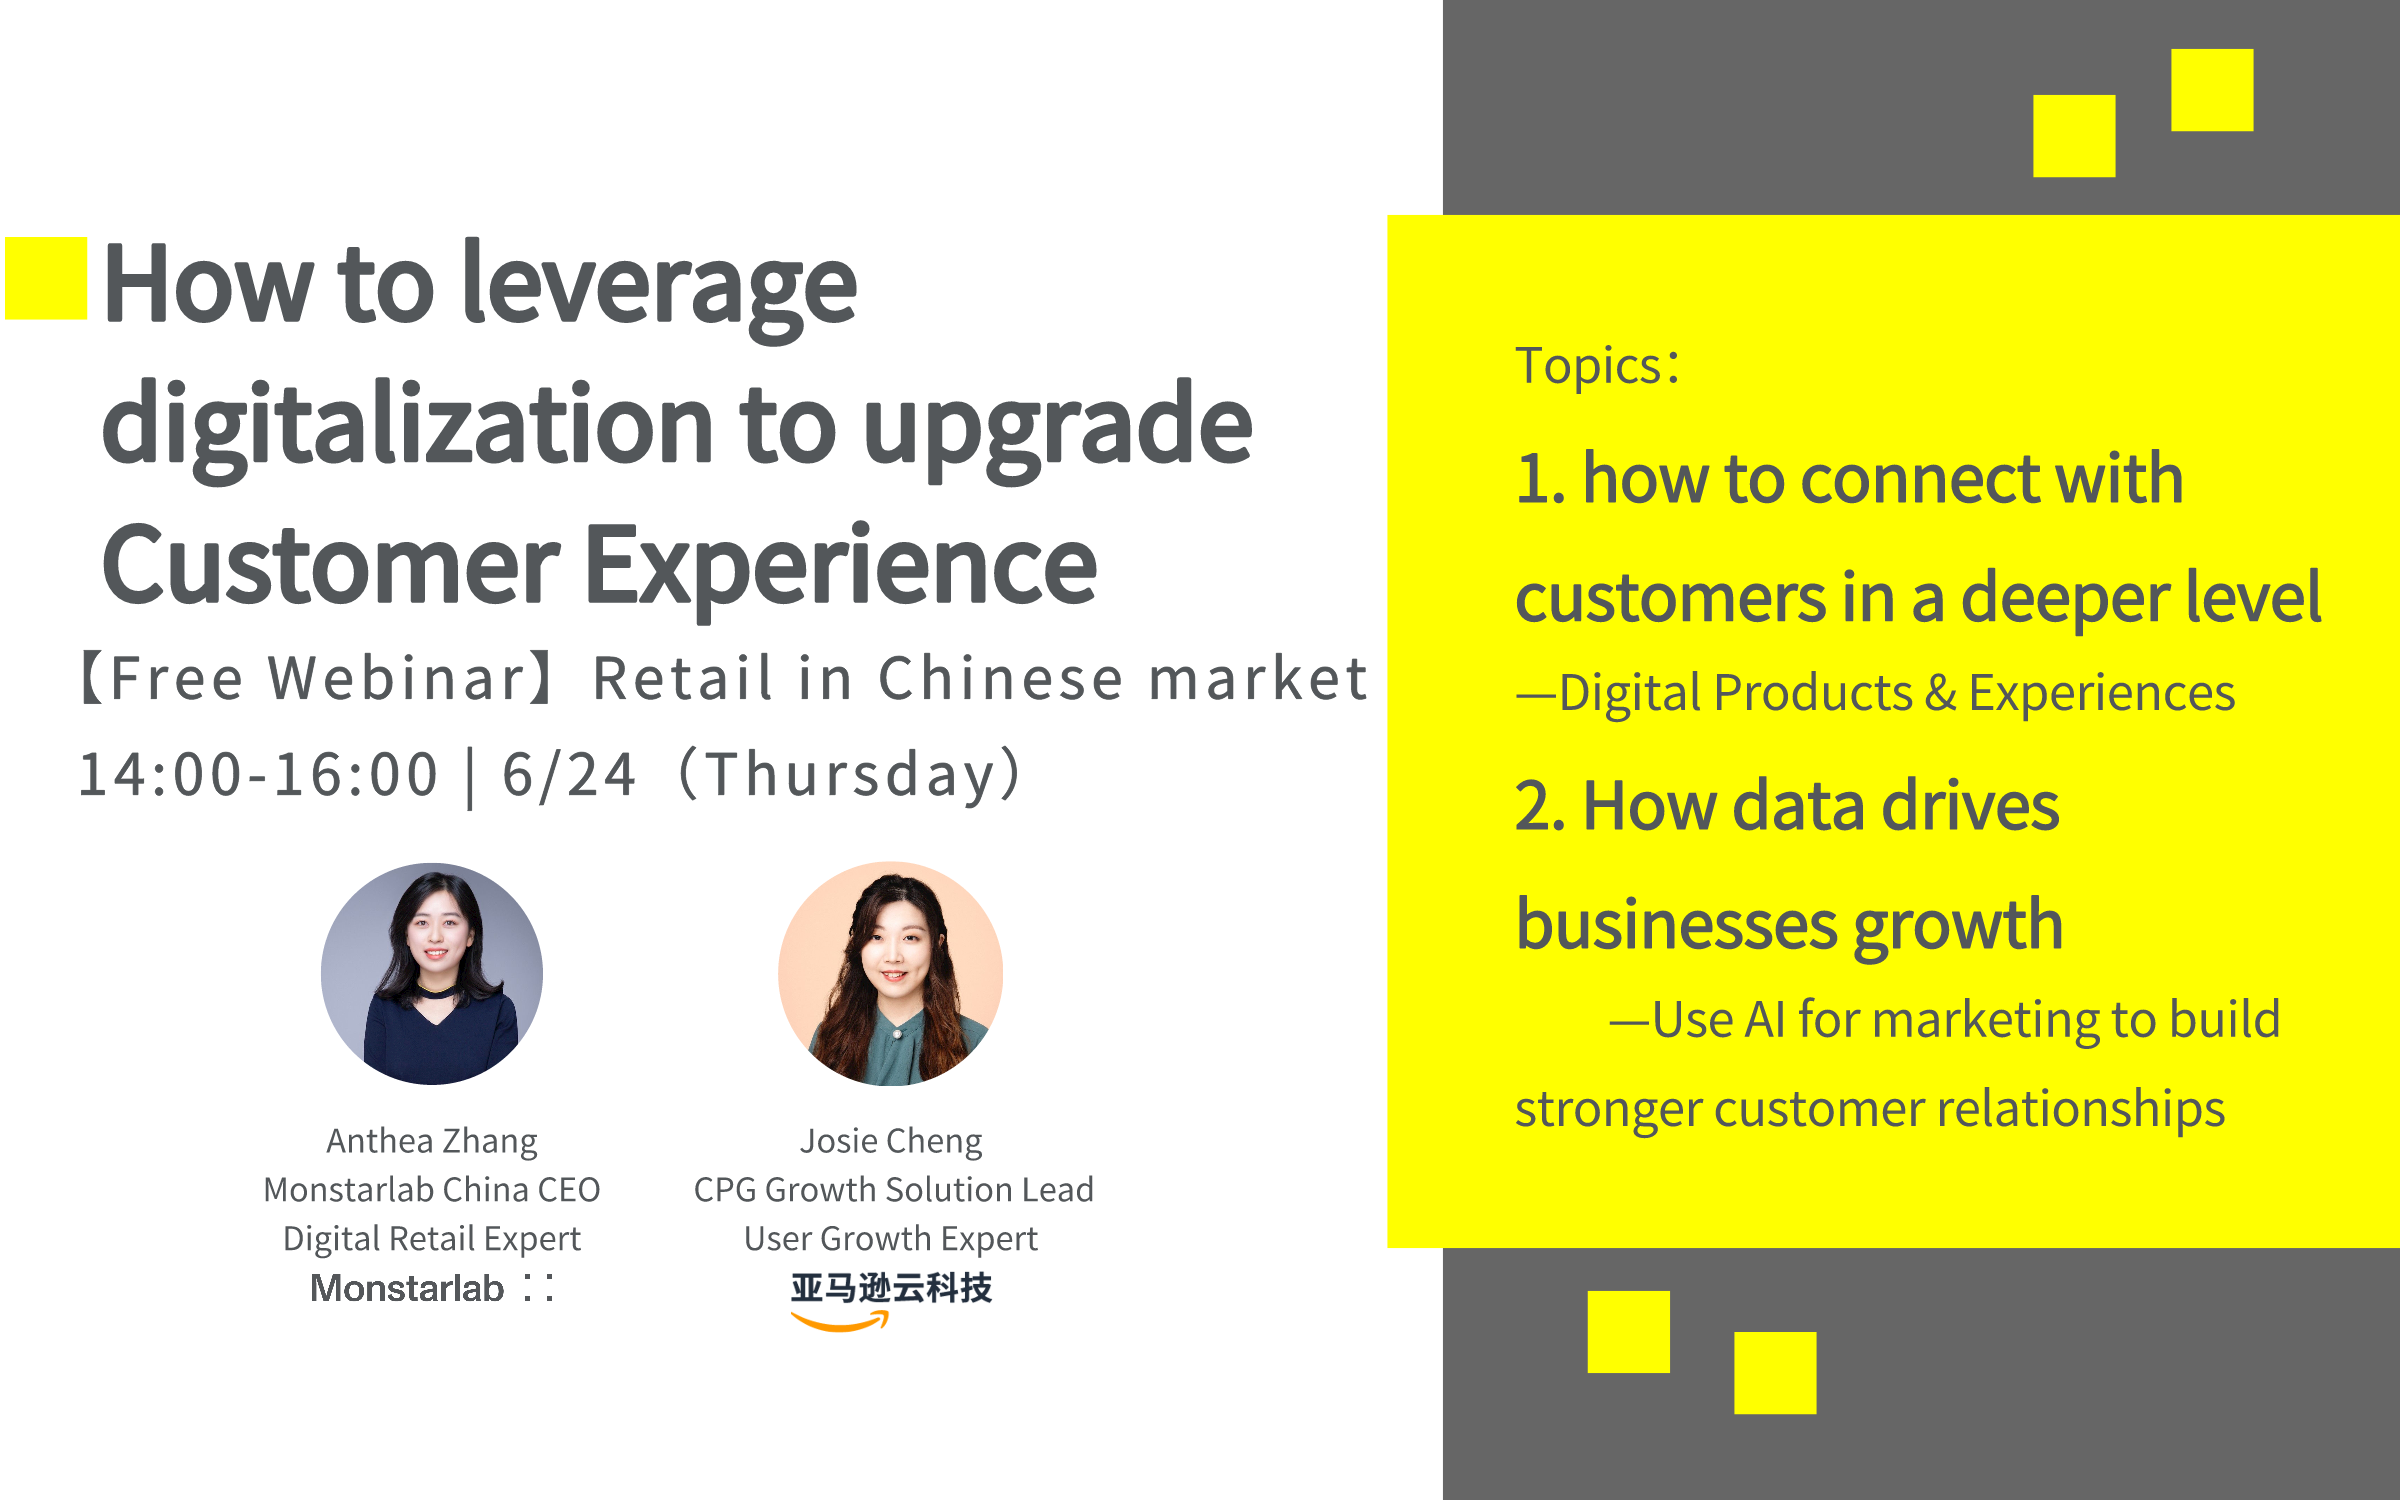 【Closed】【Free Webinar】6/24 Retail in Chinese market | How to leverage digitalization to upgrade Customer Experience